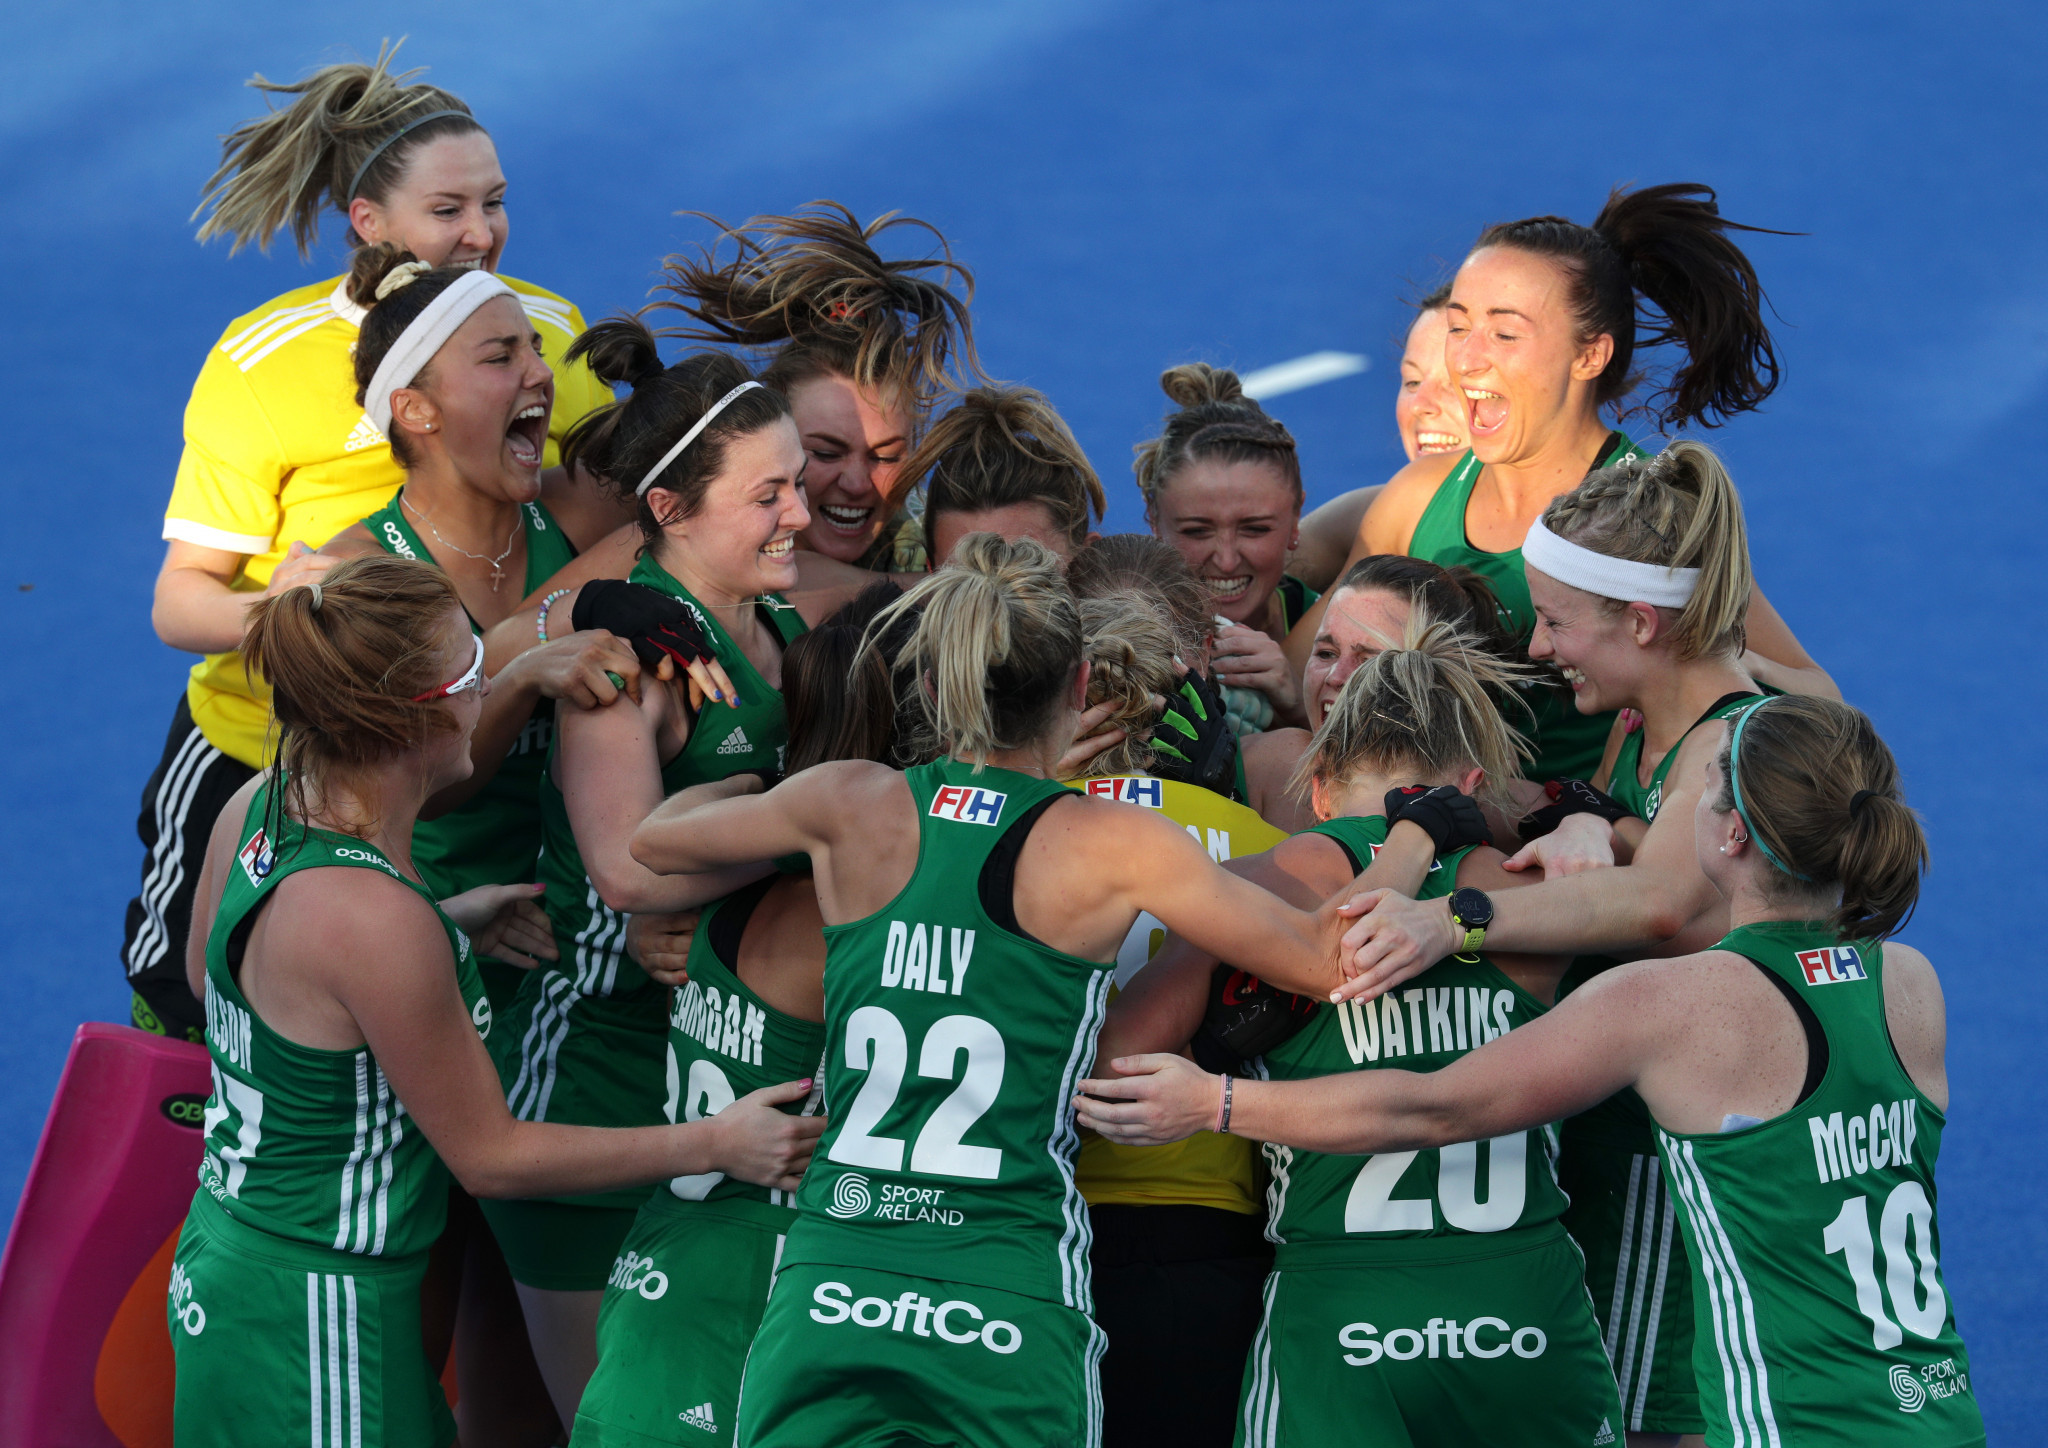 Ireland celebrate reaching the Women's Hockey World Cup semi-finals in London after a penalty shoot-out win over India ©Getty Images